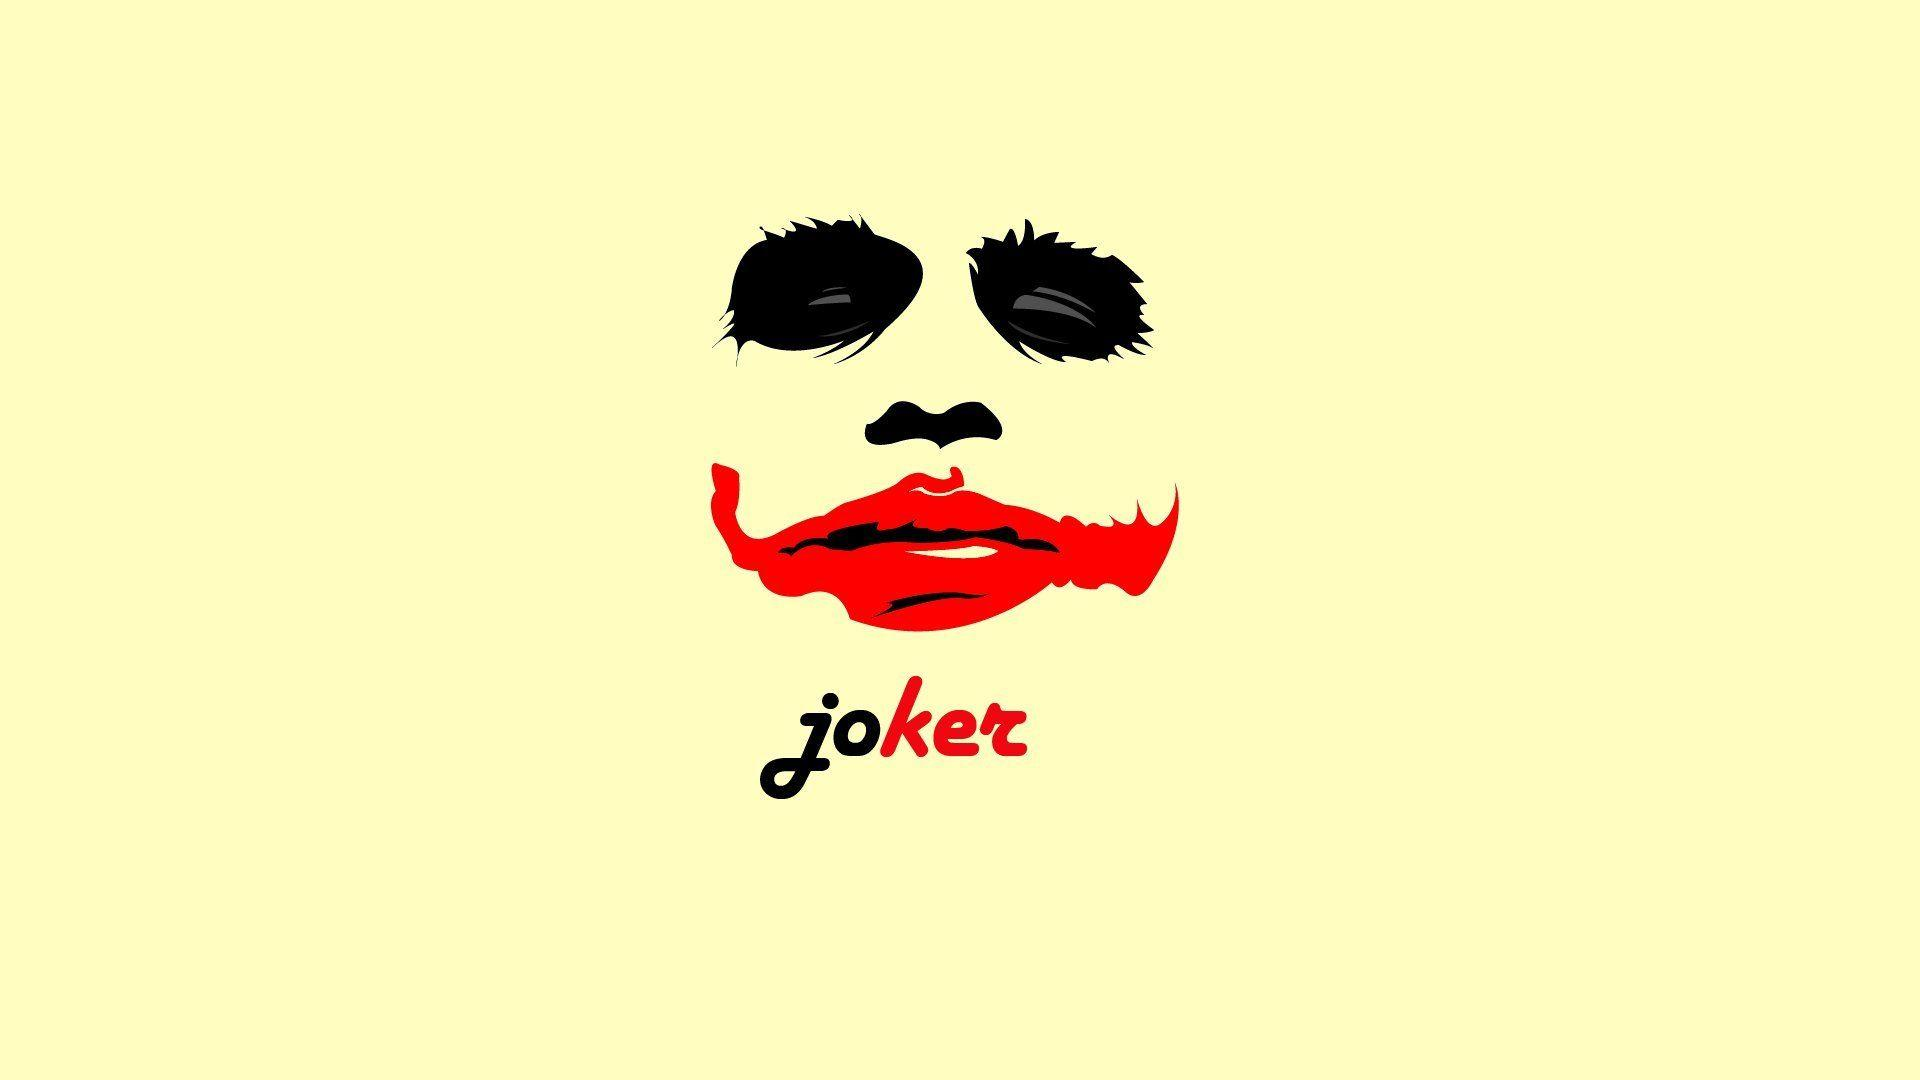 joker black red background wallpaper joker black HD wallpaper